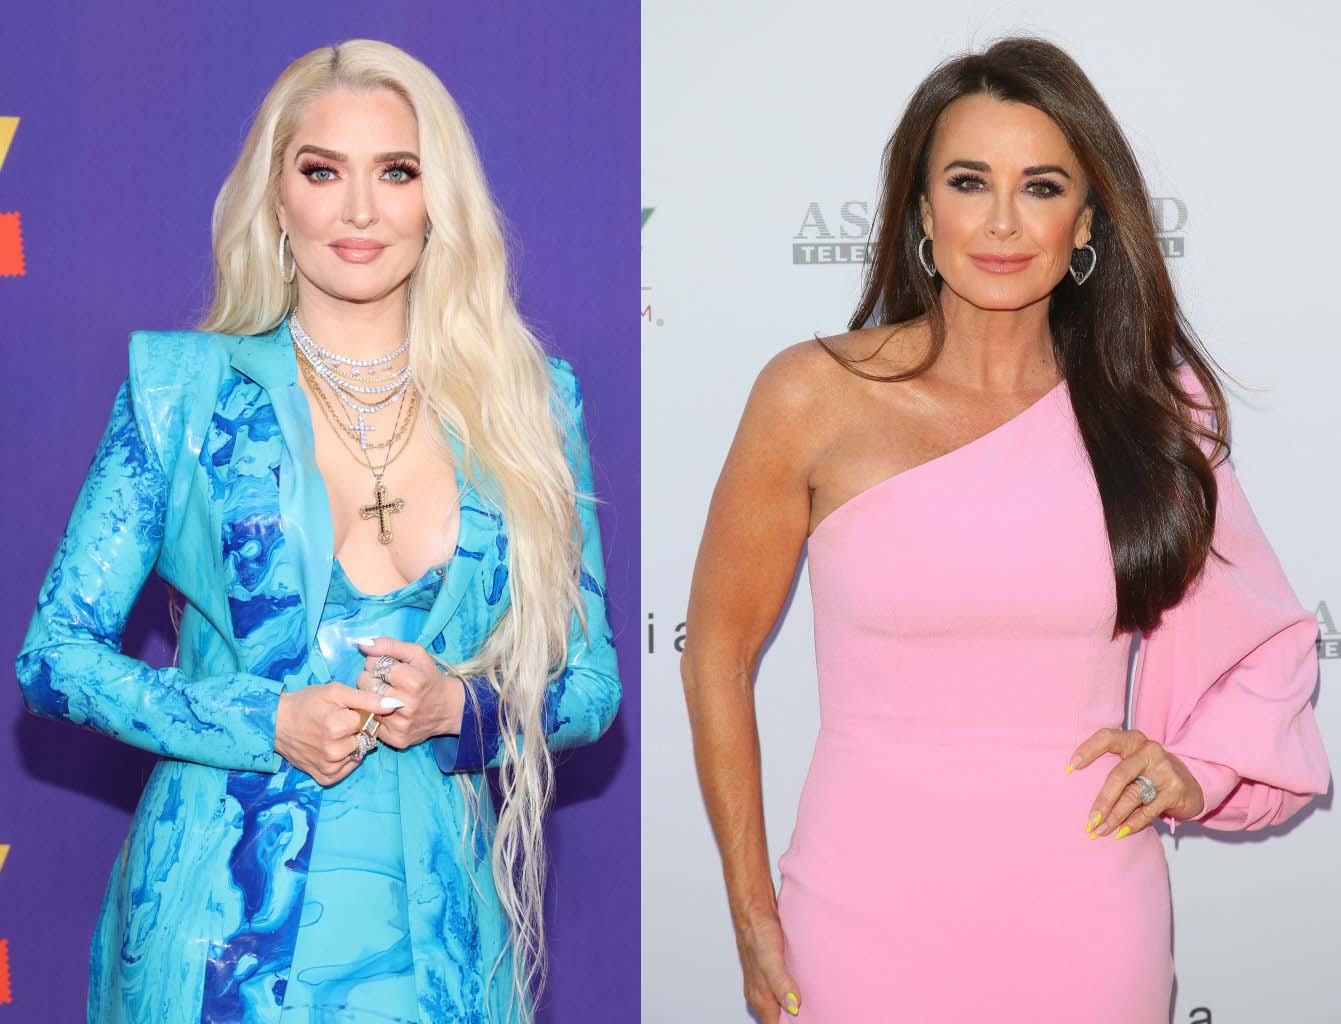 'RHOBH' Erika Jayne 'Looking Forward' To Face Off Kyle Richards After Shocking Backstabbing Situation In Their Reunion